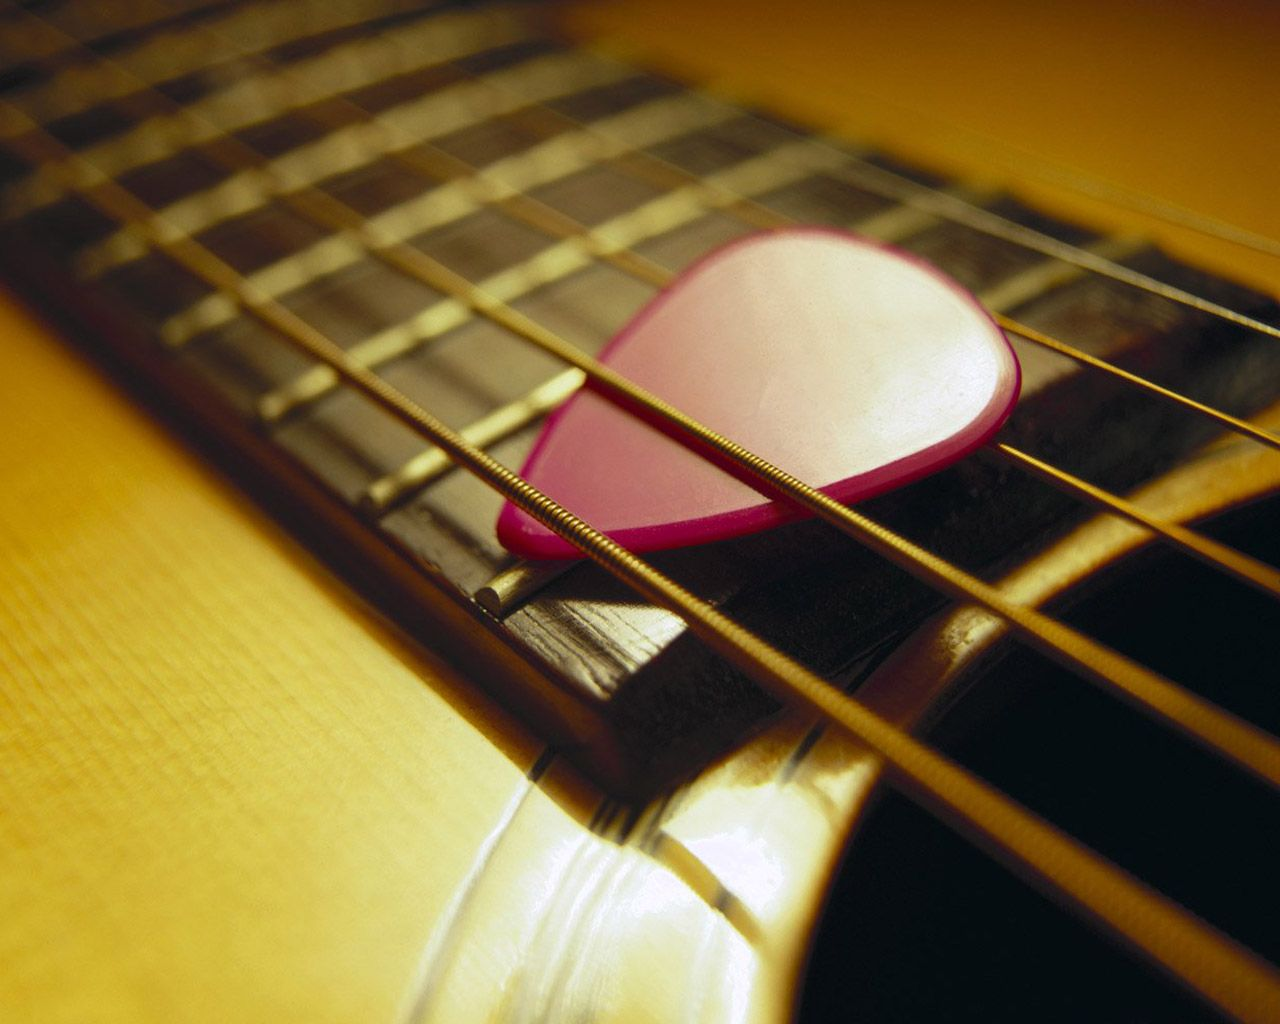 Gibson Acoustic Guitar Music Images HD Wallpaper For Desktop Mobile Free 529909029954